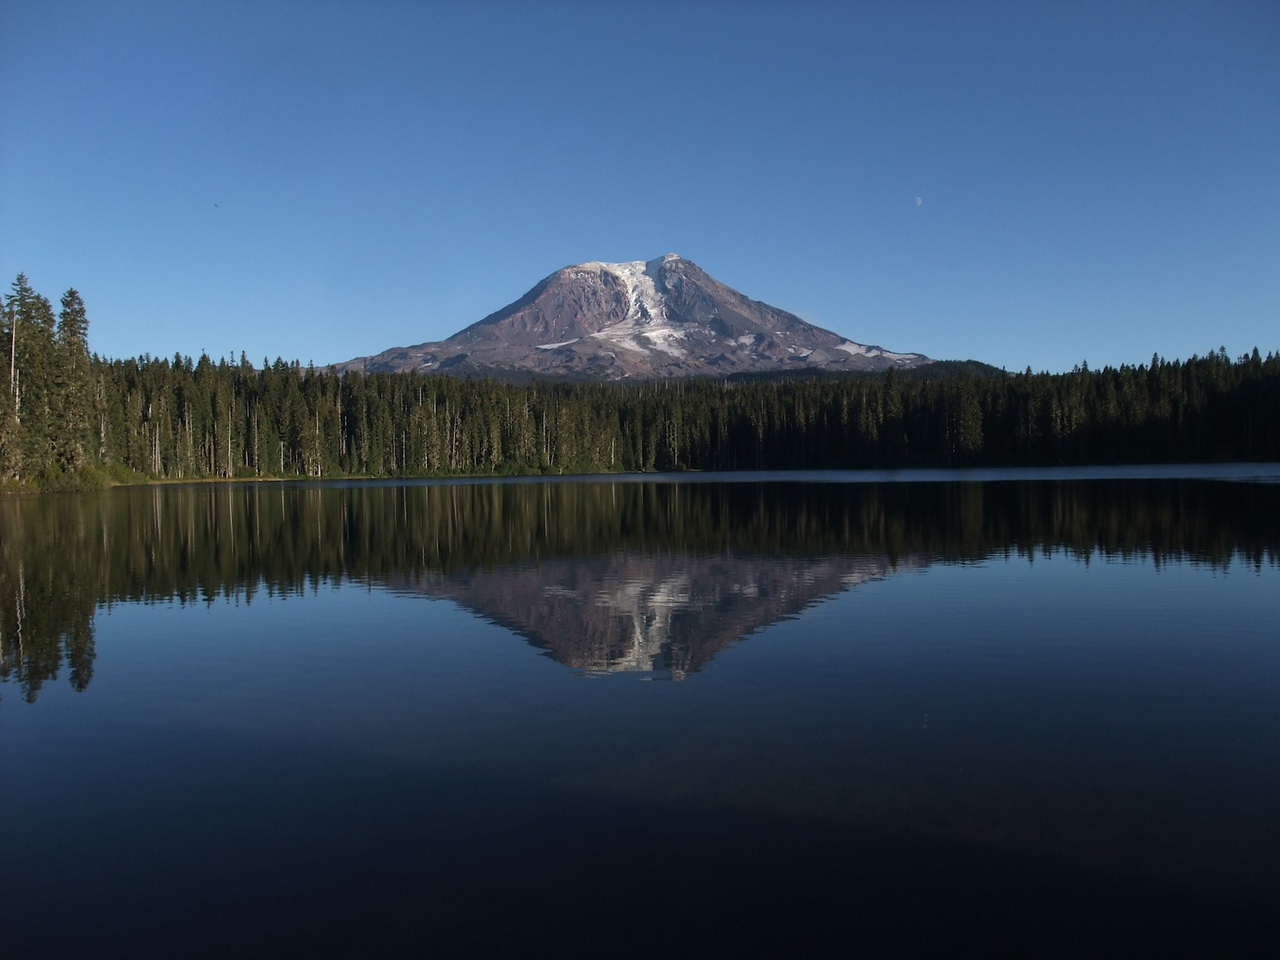 Mt. Adams seen from Takhlakh Lake